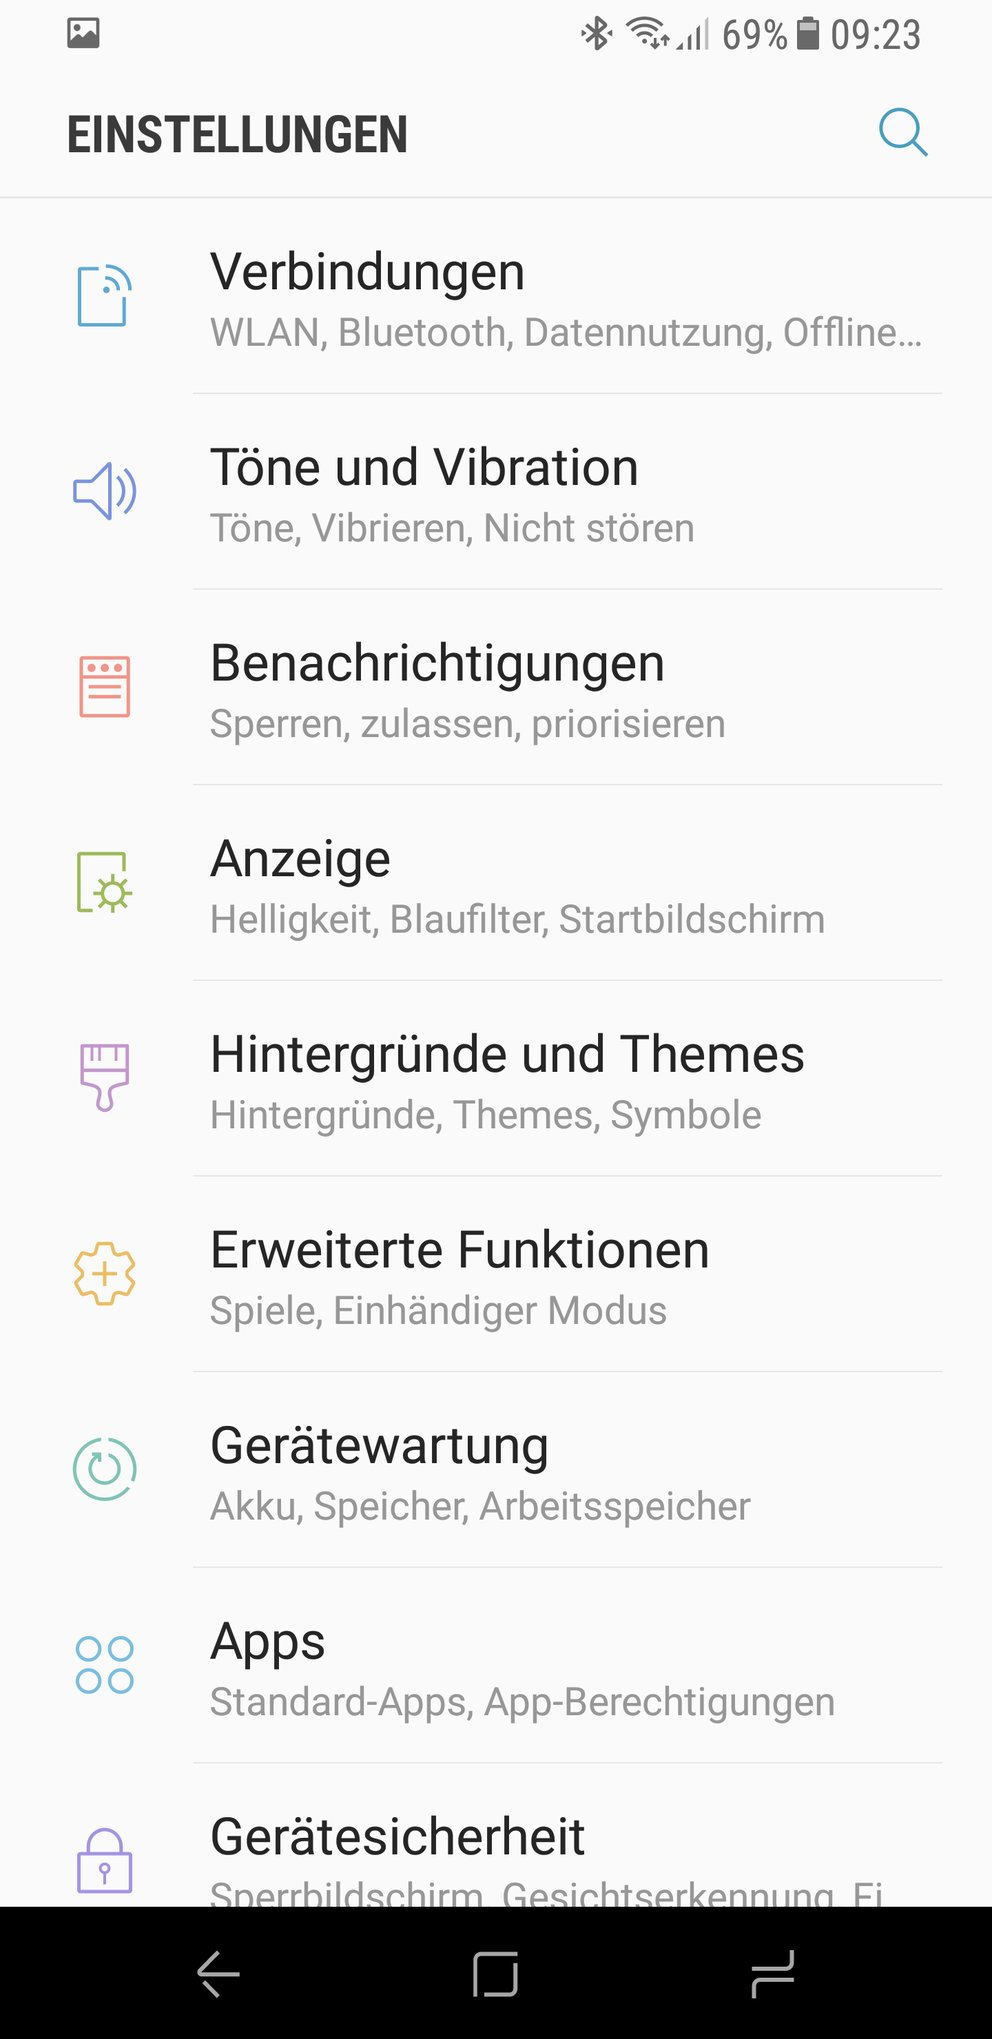 Samsung-Galaxy-S8-Software-Screenshot-Einstellungen